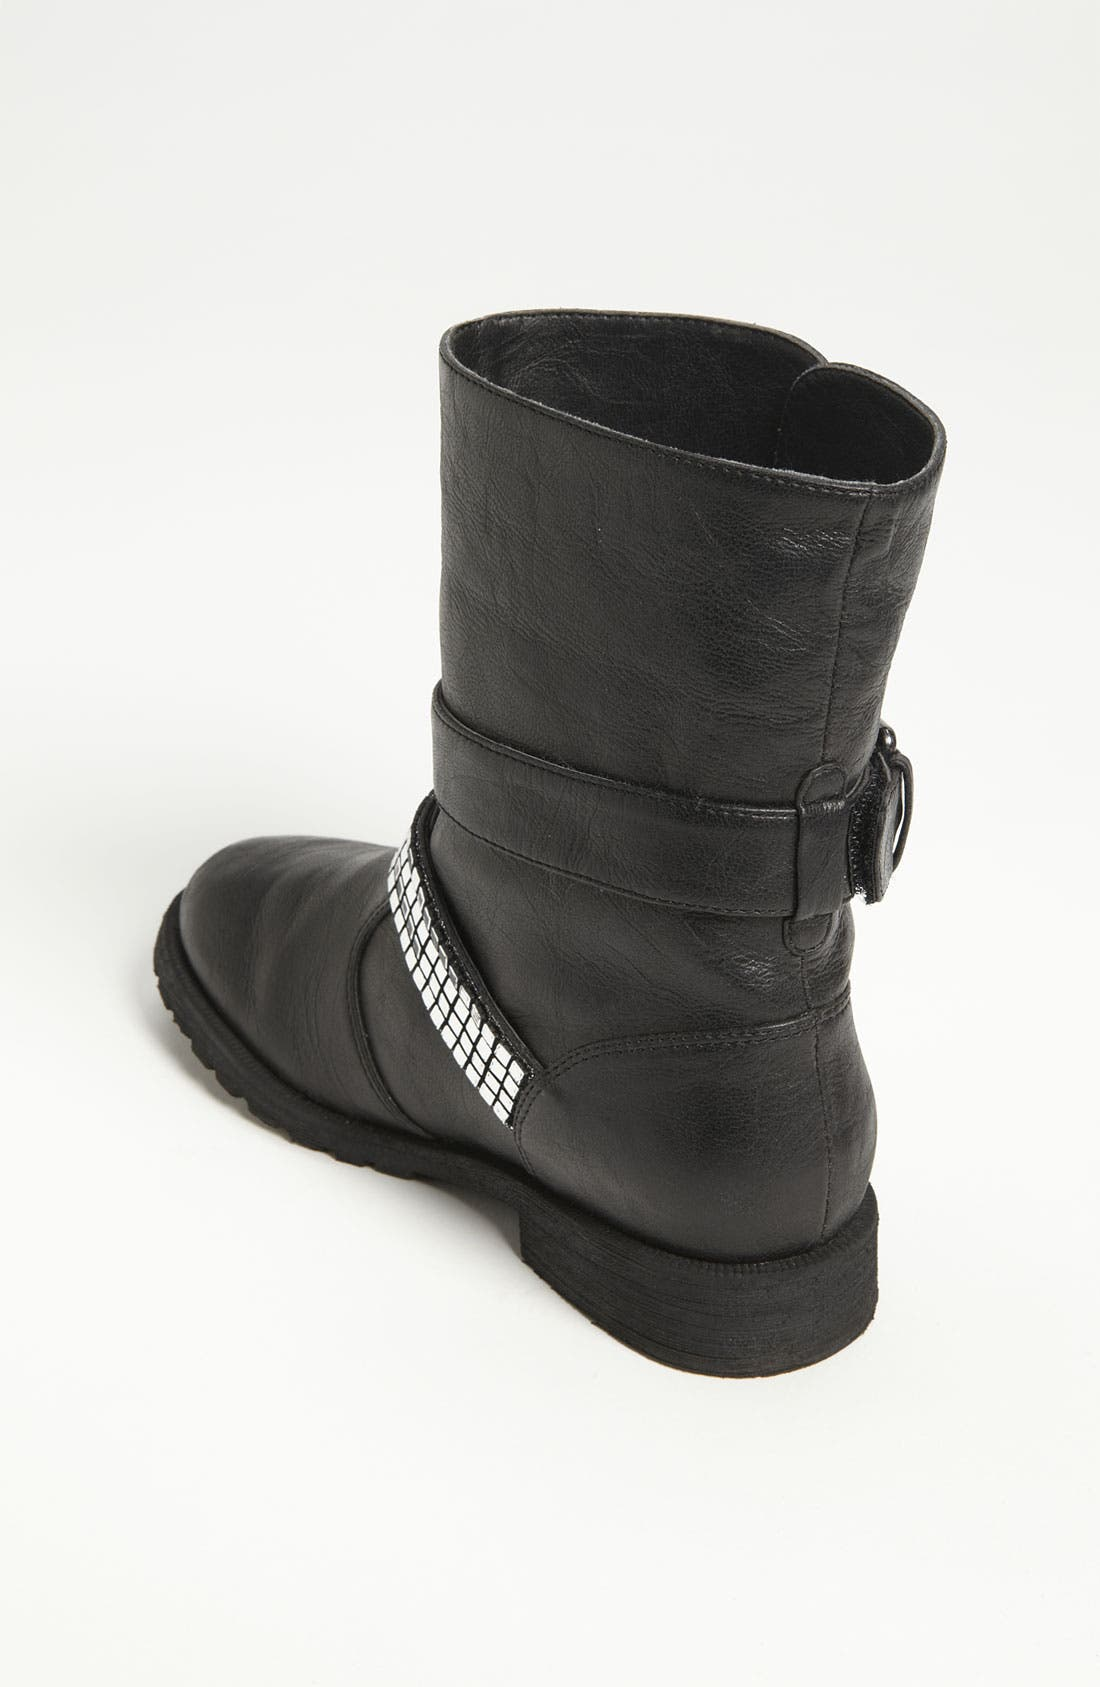 Alternate Image 2  - Nordstrom 'Lindy' Boot (Toddler, Little Kid & Big Kid)